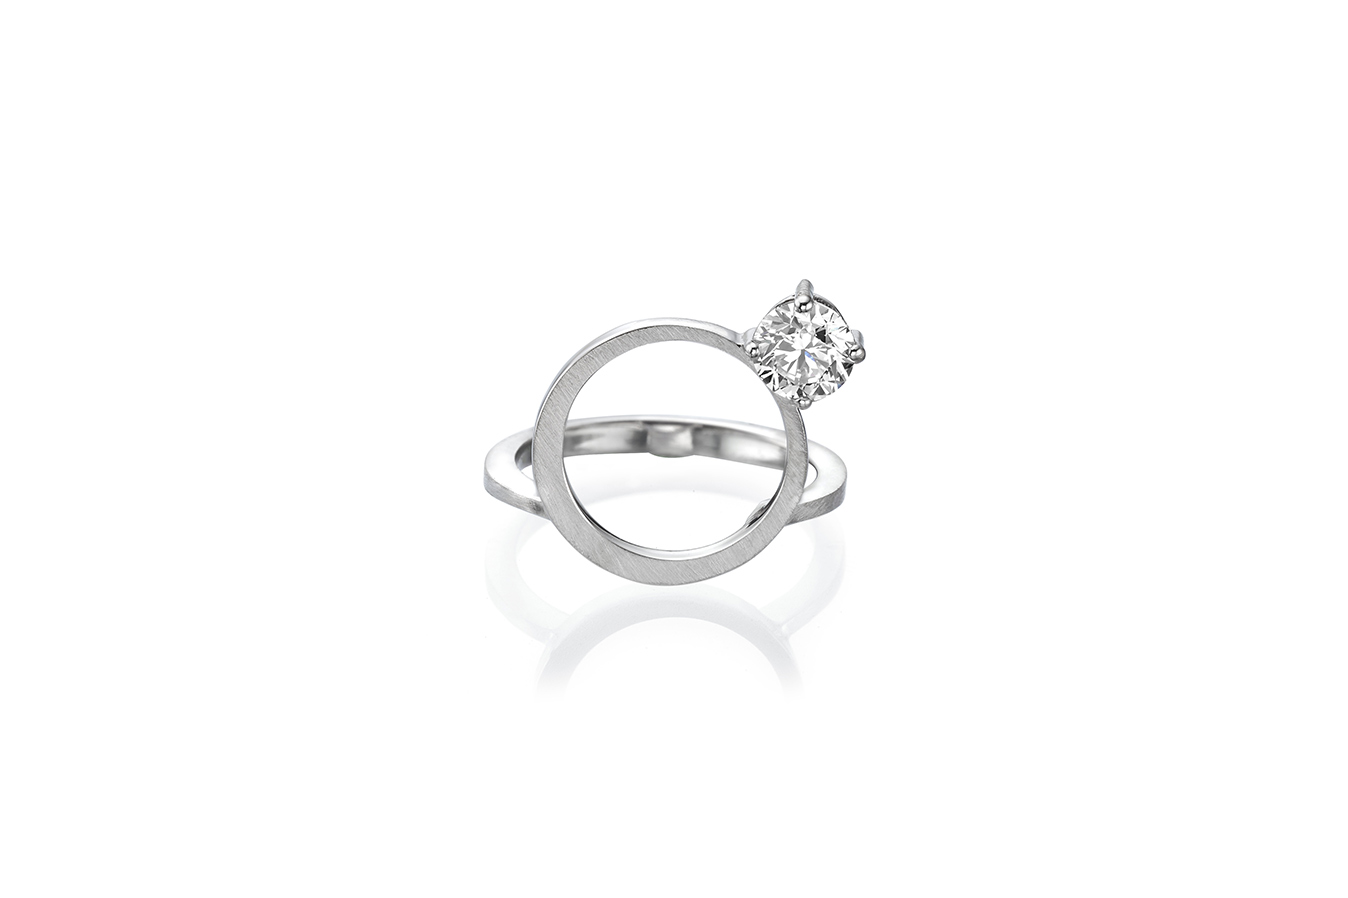 EXTRACT A RING 18K WHITE GOLD 0.50 CT DIAMOND